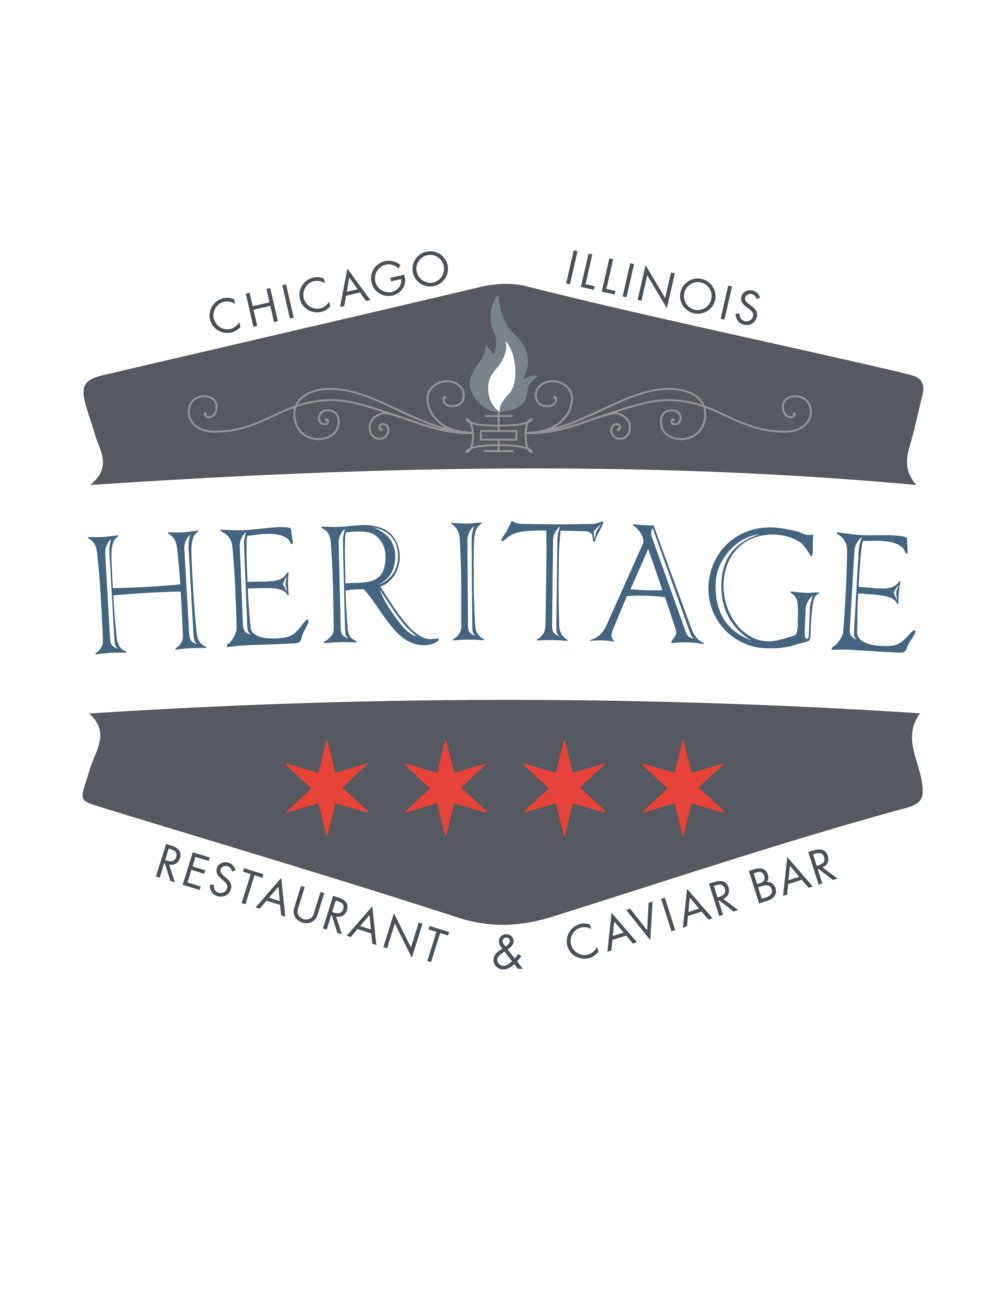 kake-chicago-content-creation-heritage-restaurant-caviar-bar